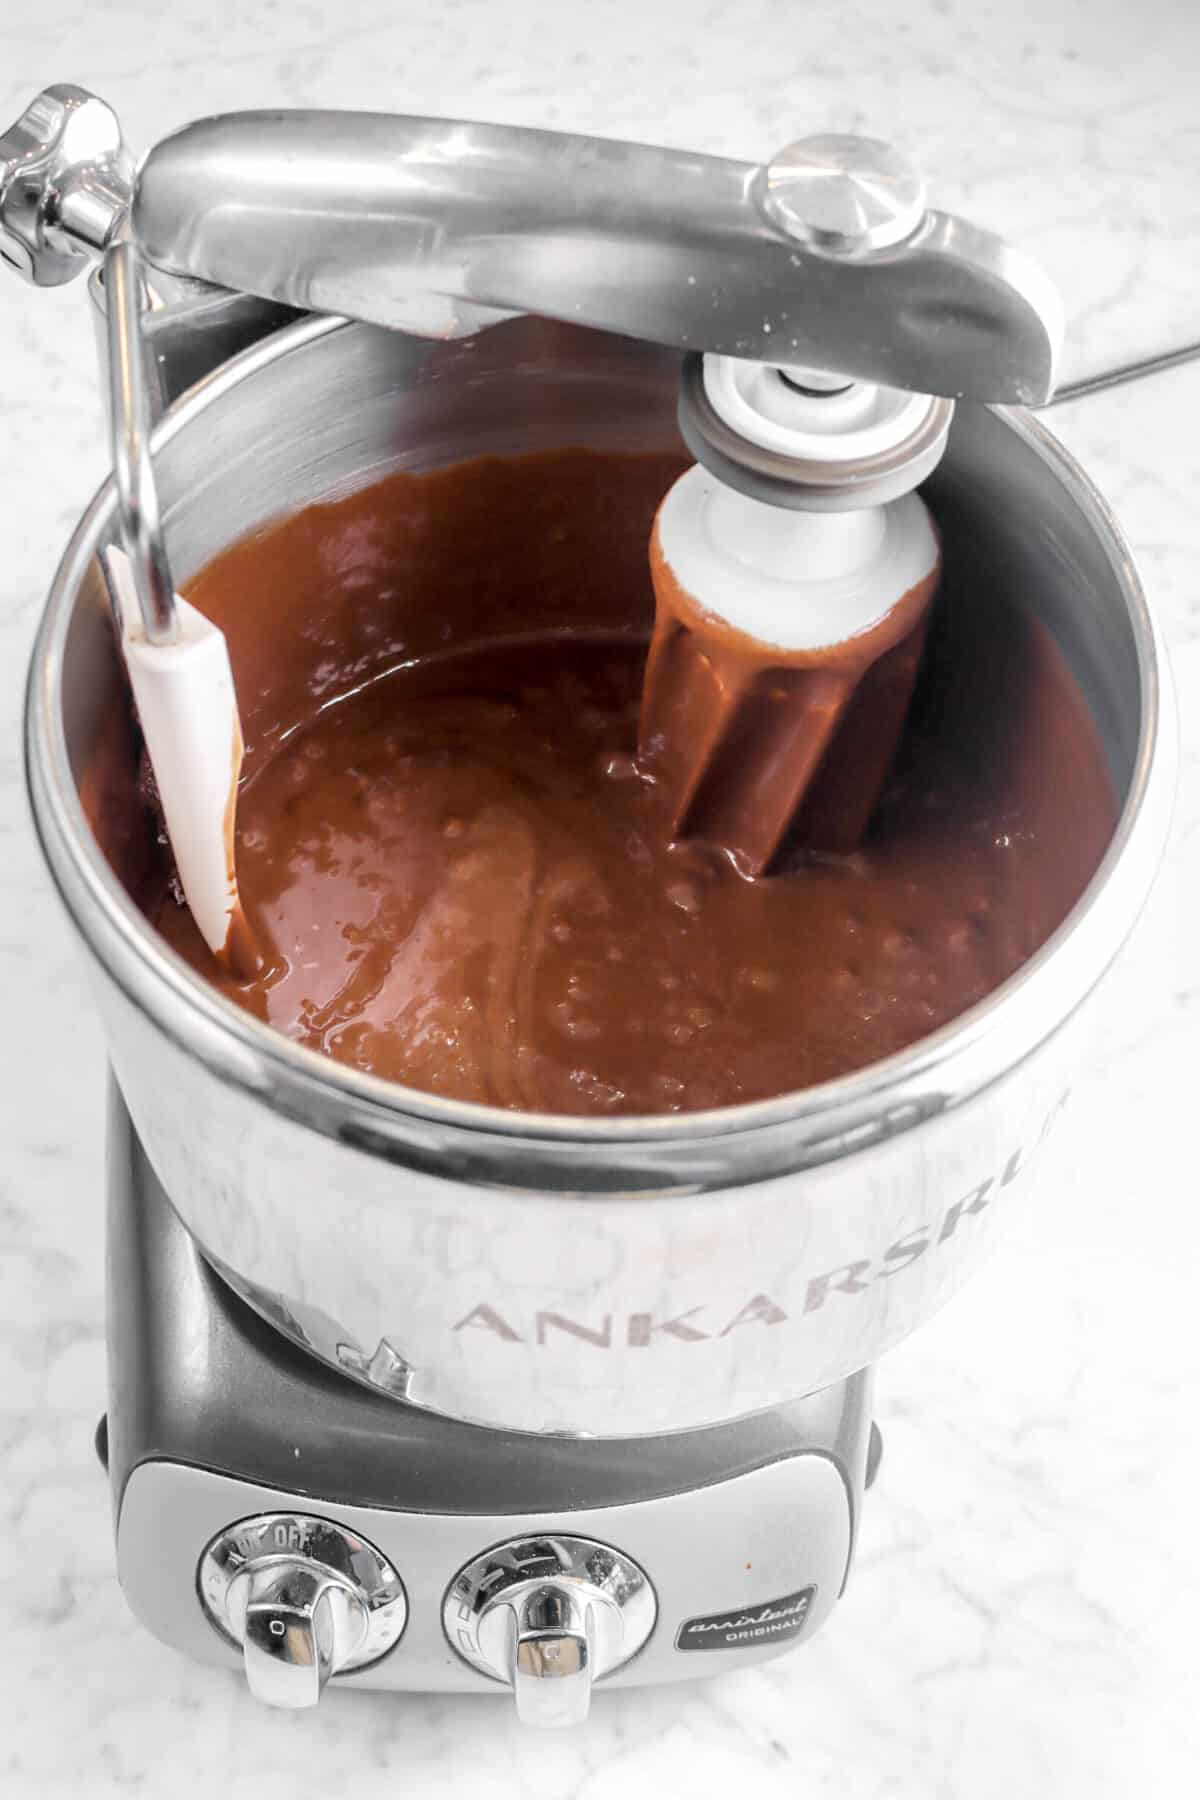 brownie batter in a mixer